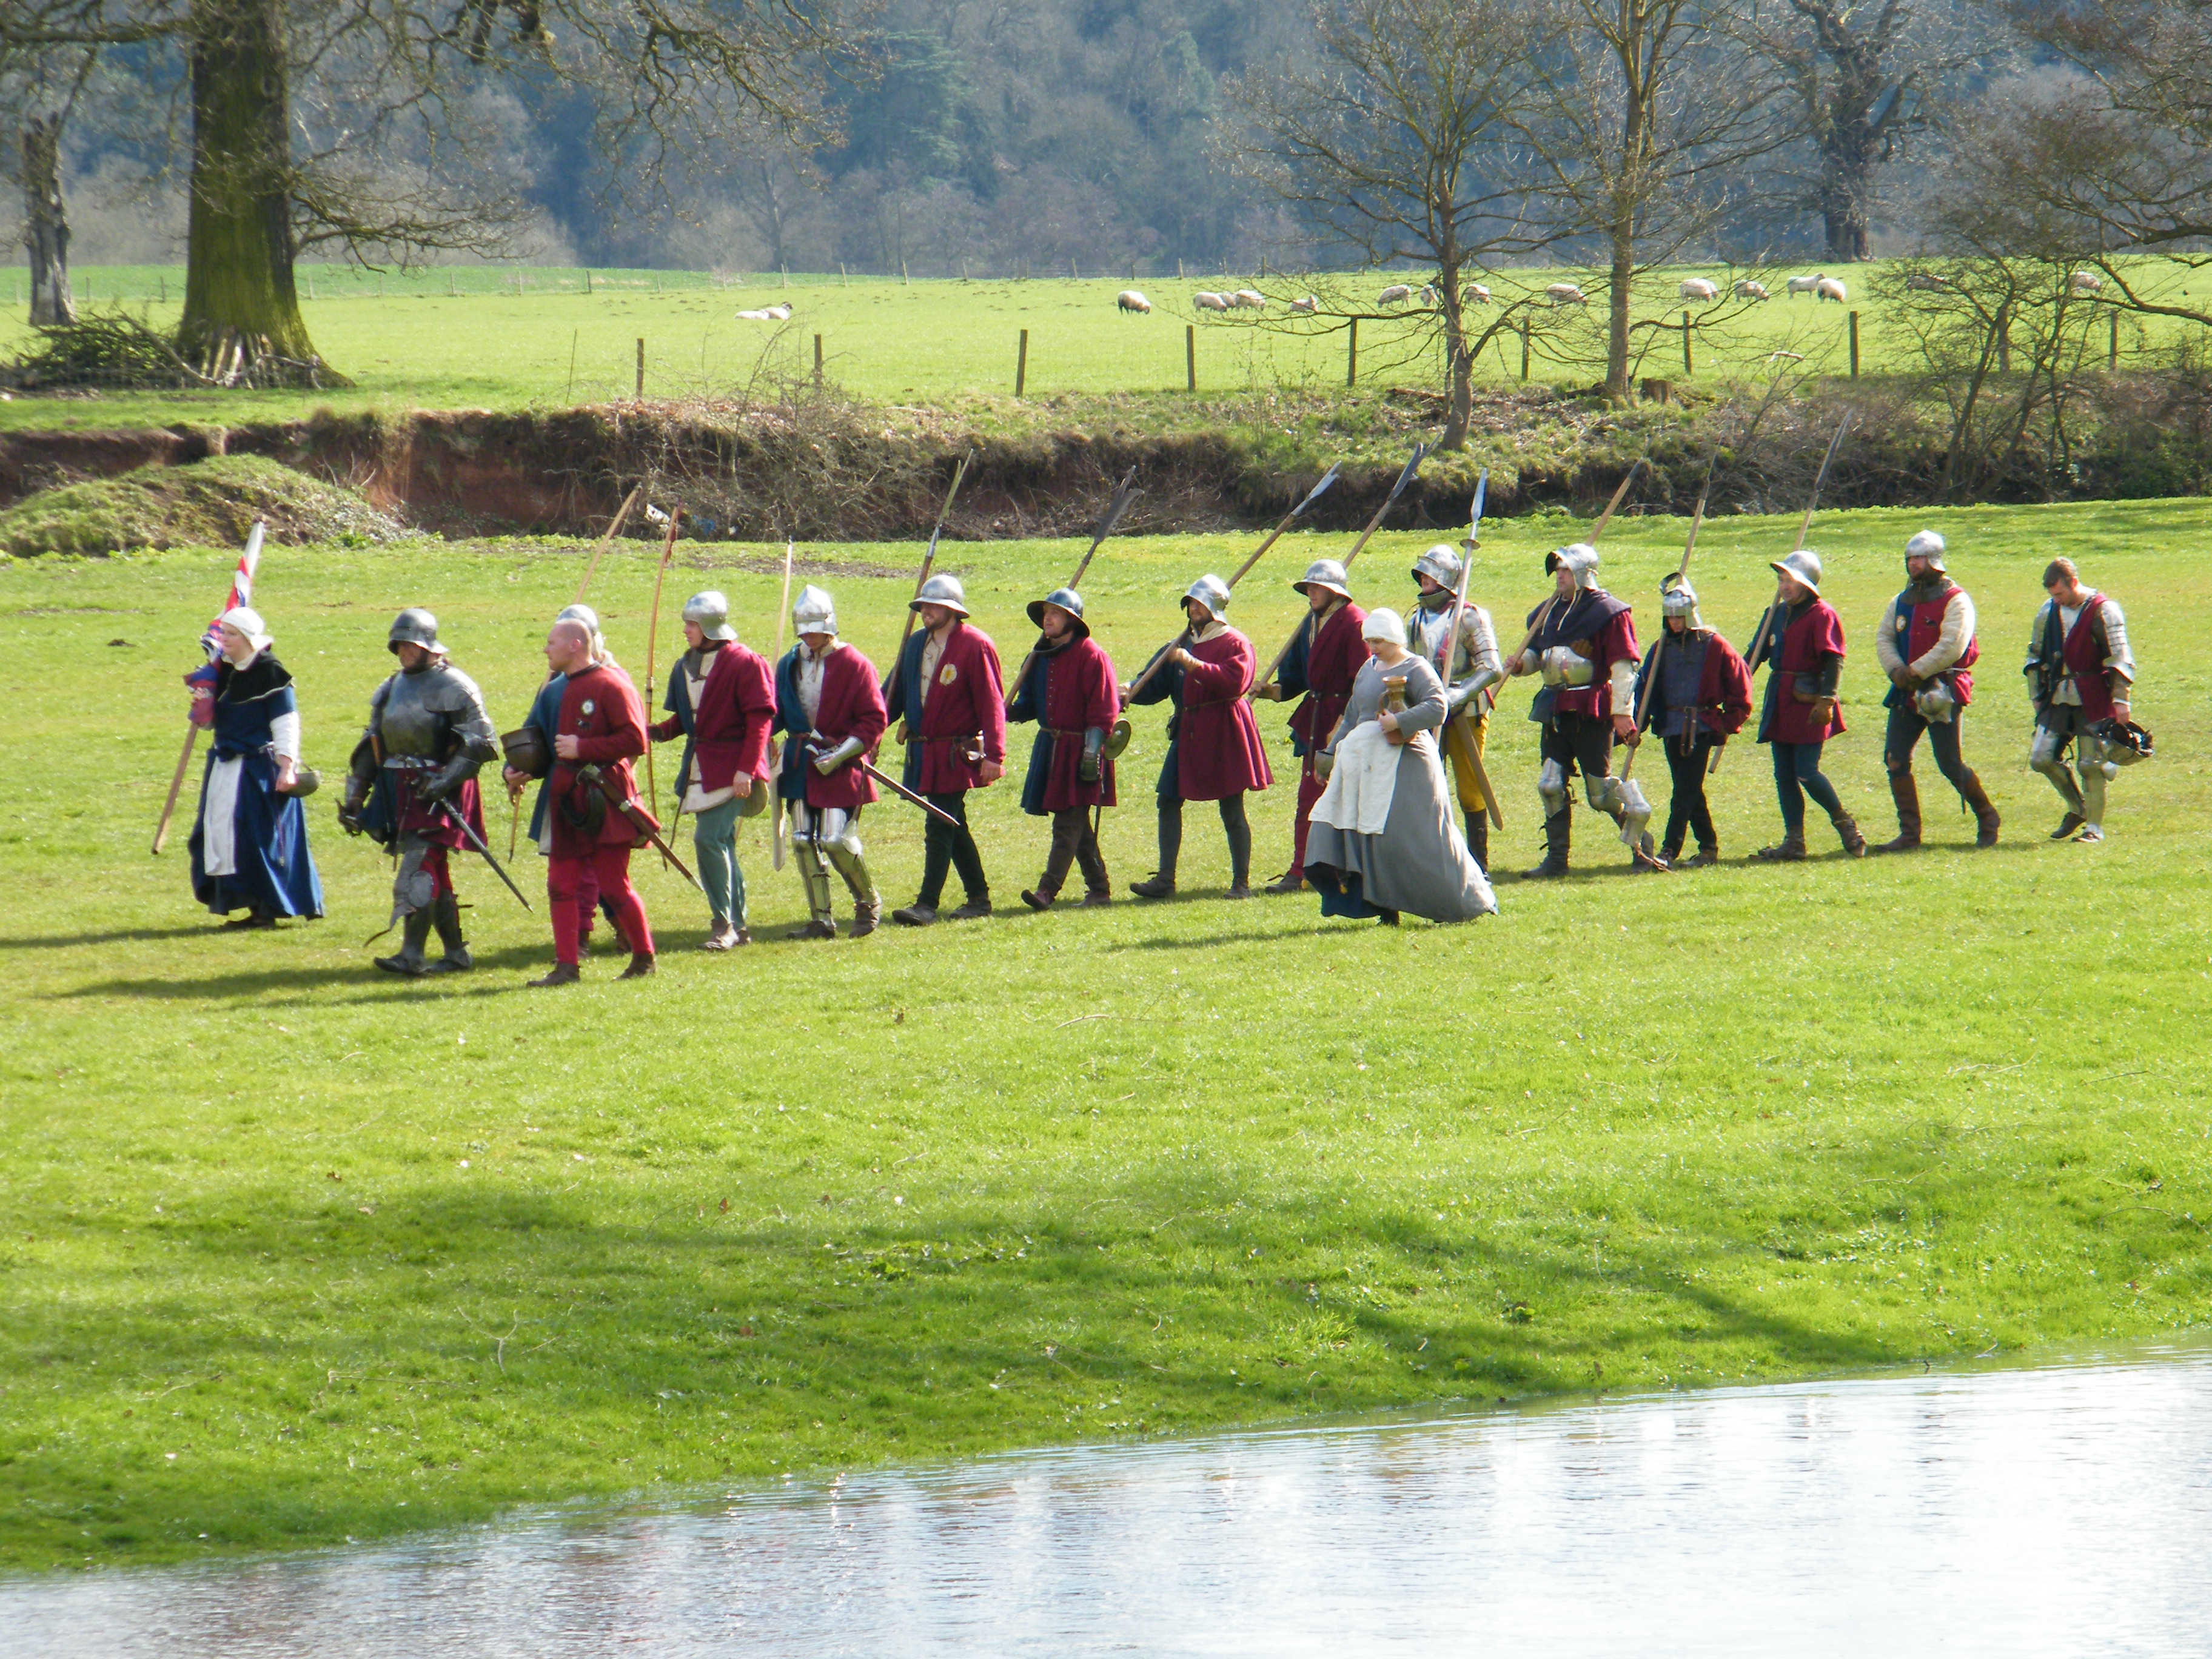 Leaving the field at Warwick Castle